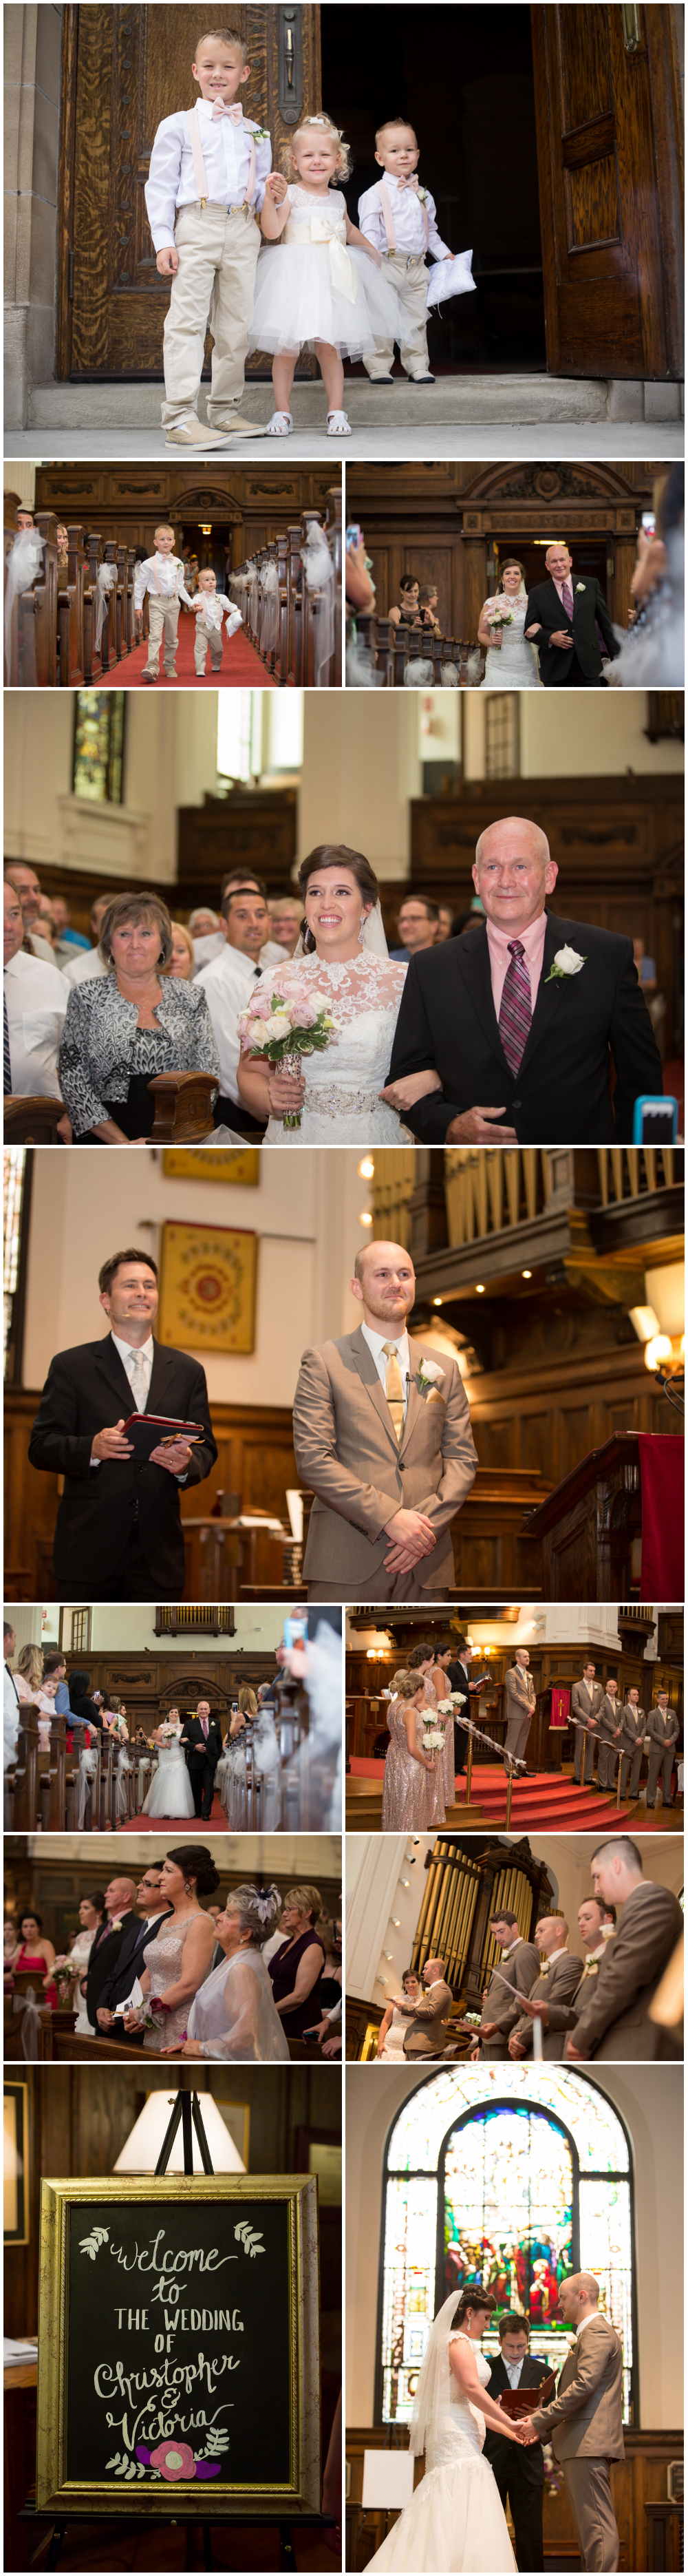 Liuna_Station_Hamilton_Wedding_Photo_JJMedia-6